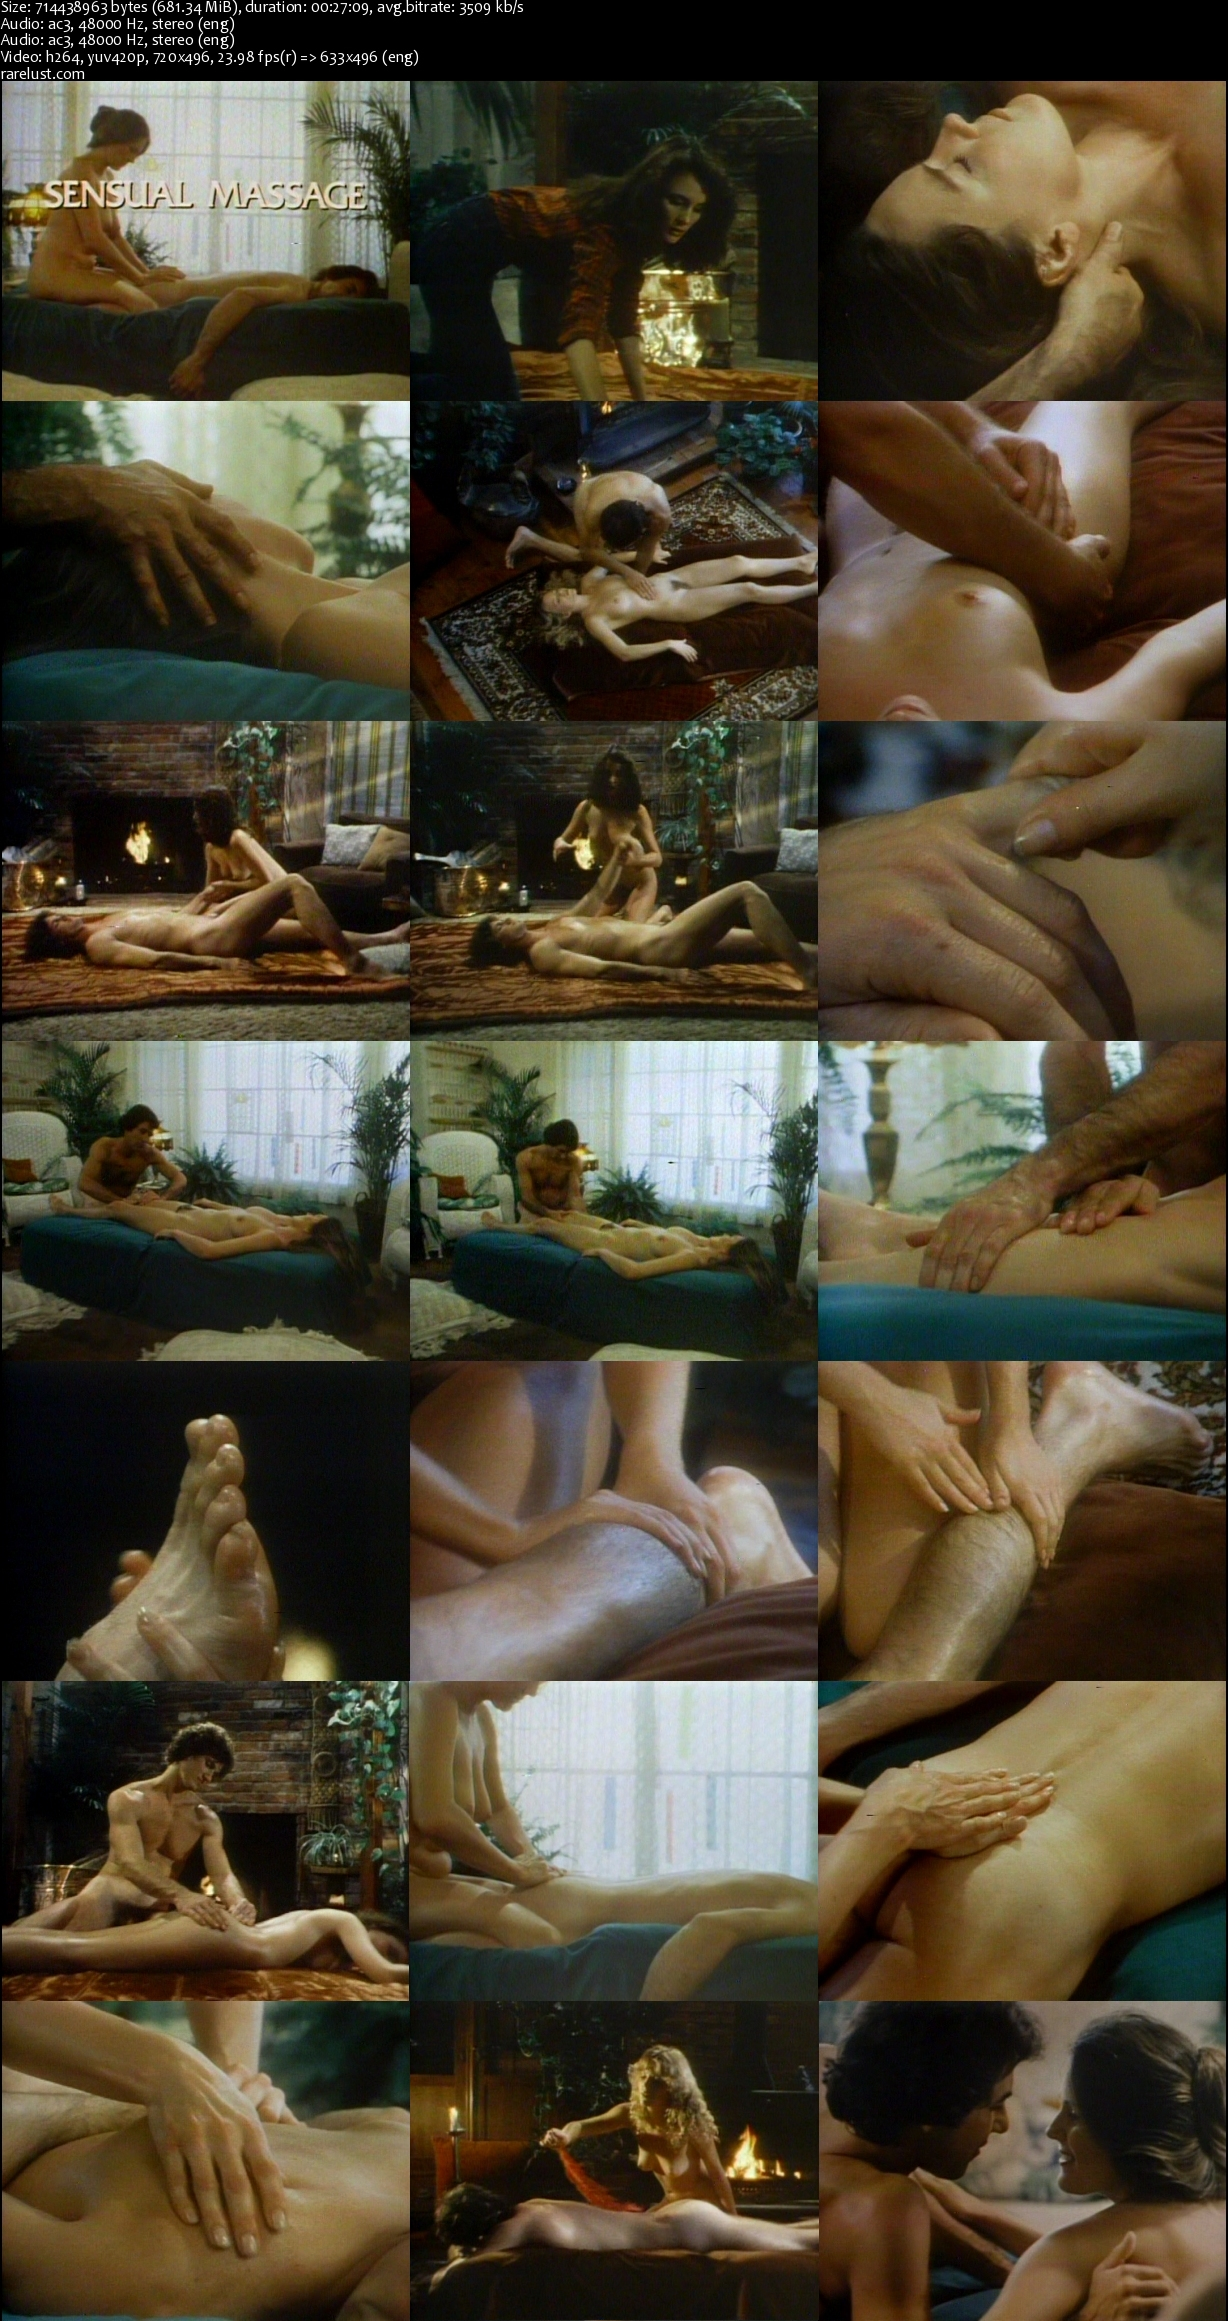 sensual_massage_the_touch_of_love_1980